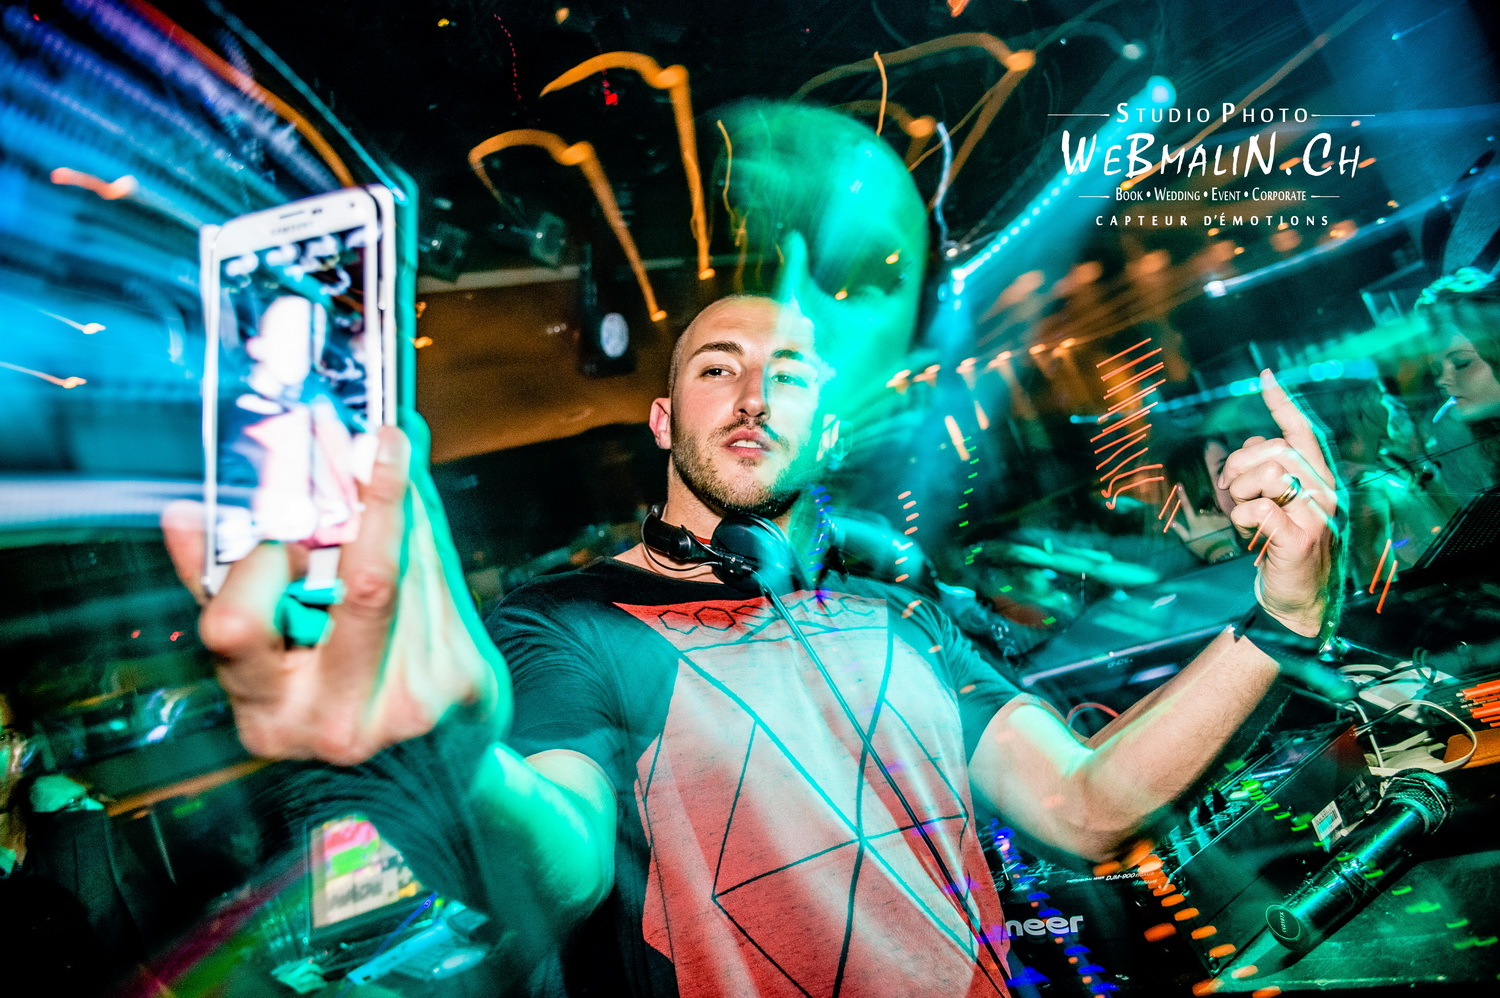 Portfolio - Clubbing - Magic Finger - Dj DkMike